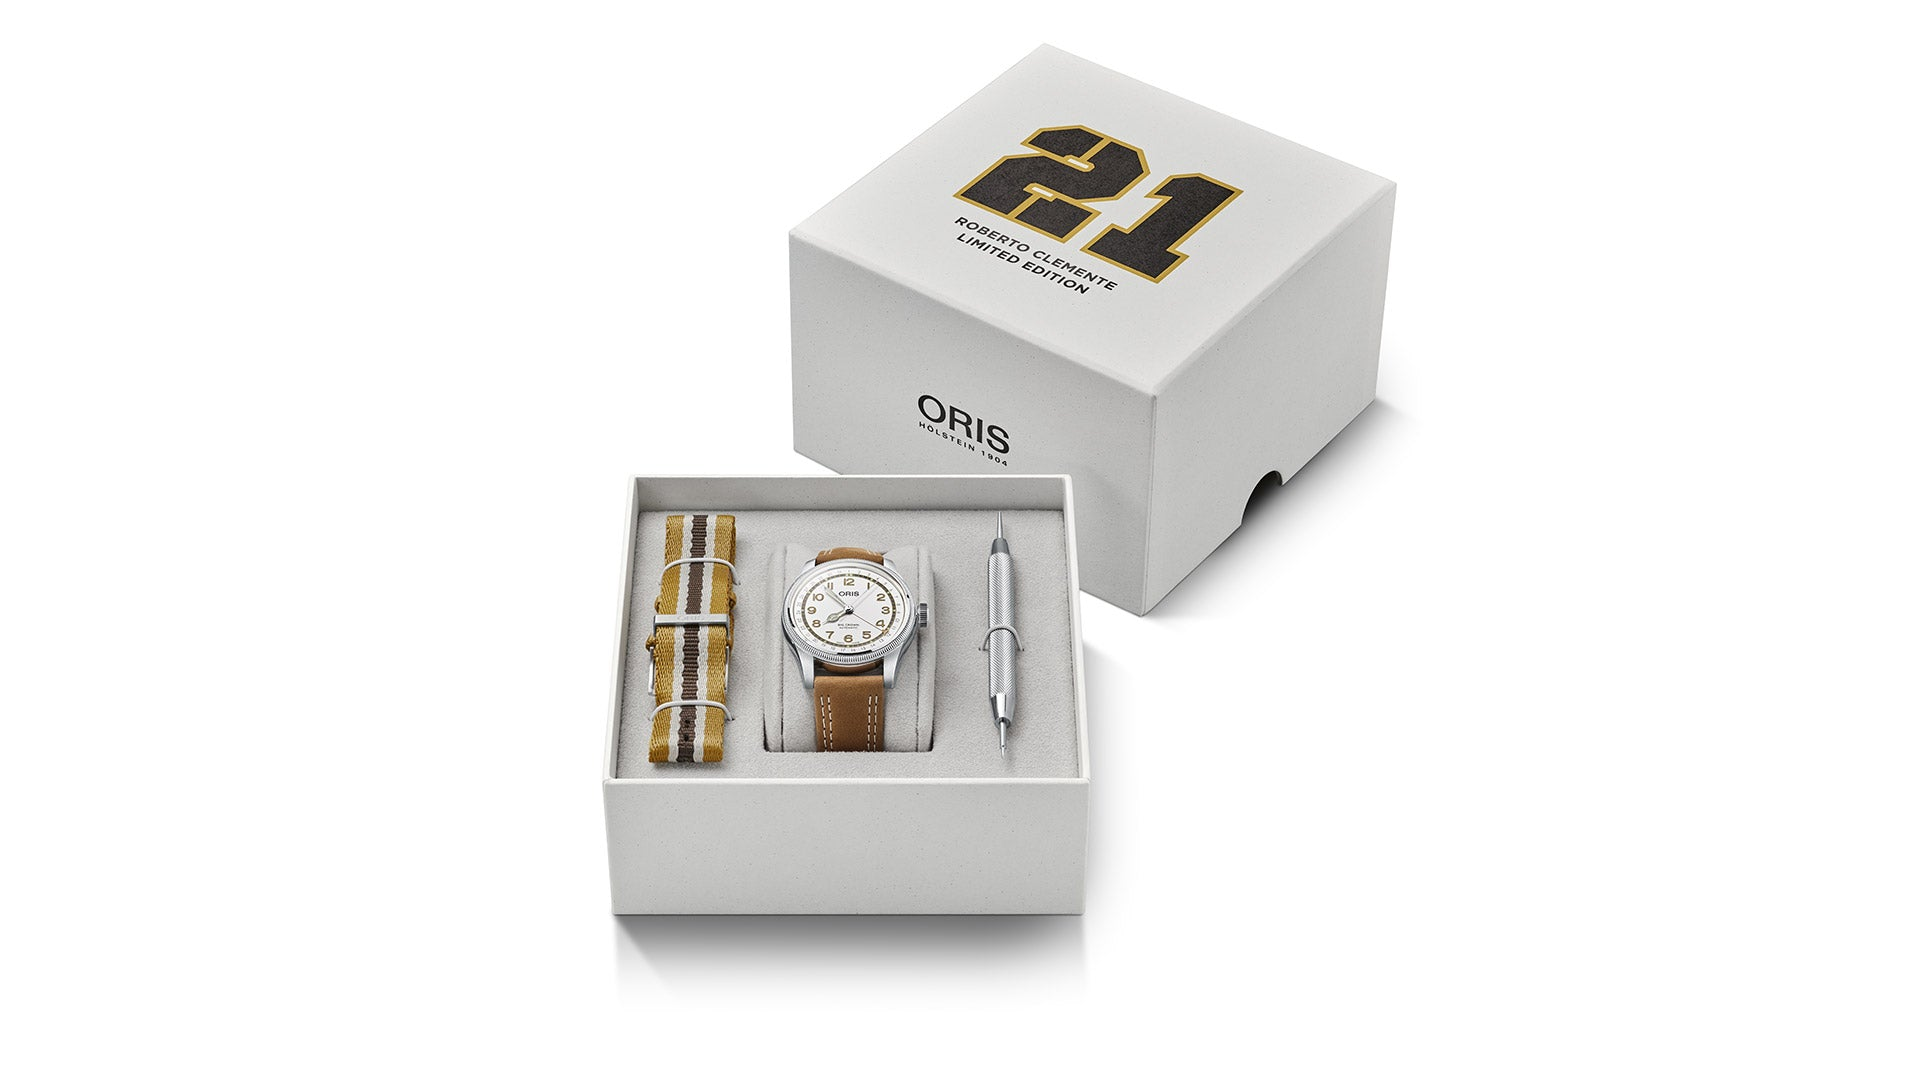 The Limited Edition Oris Roberto Clemente Watch.